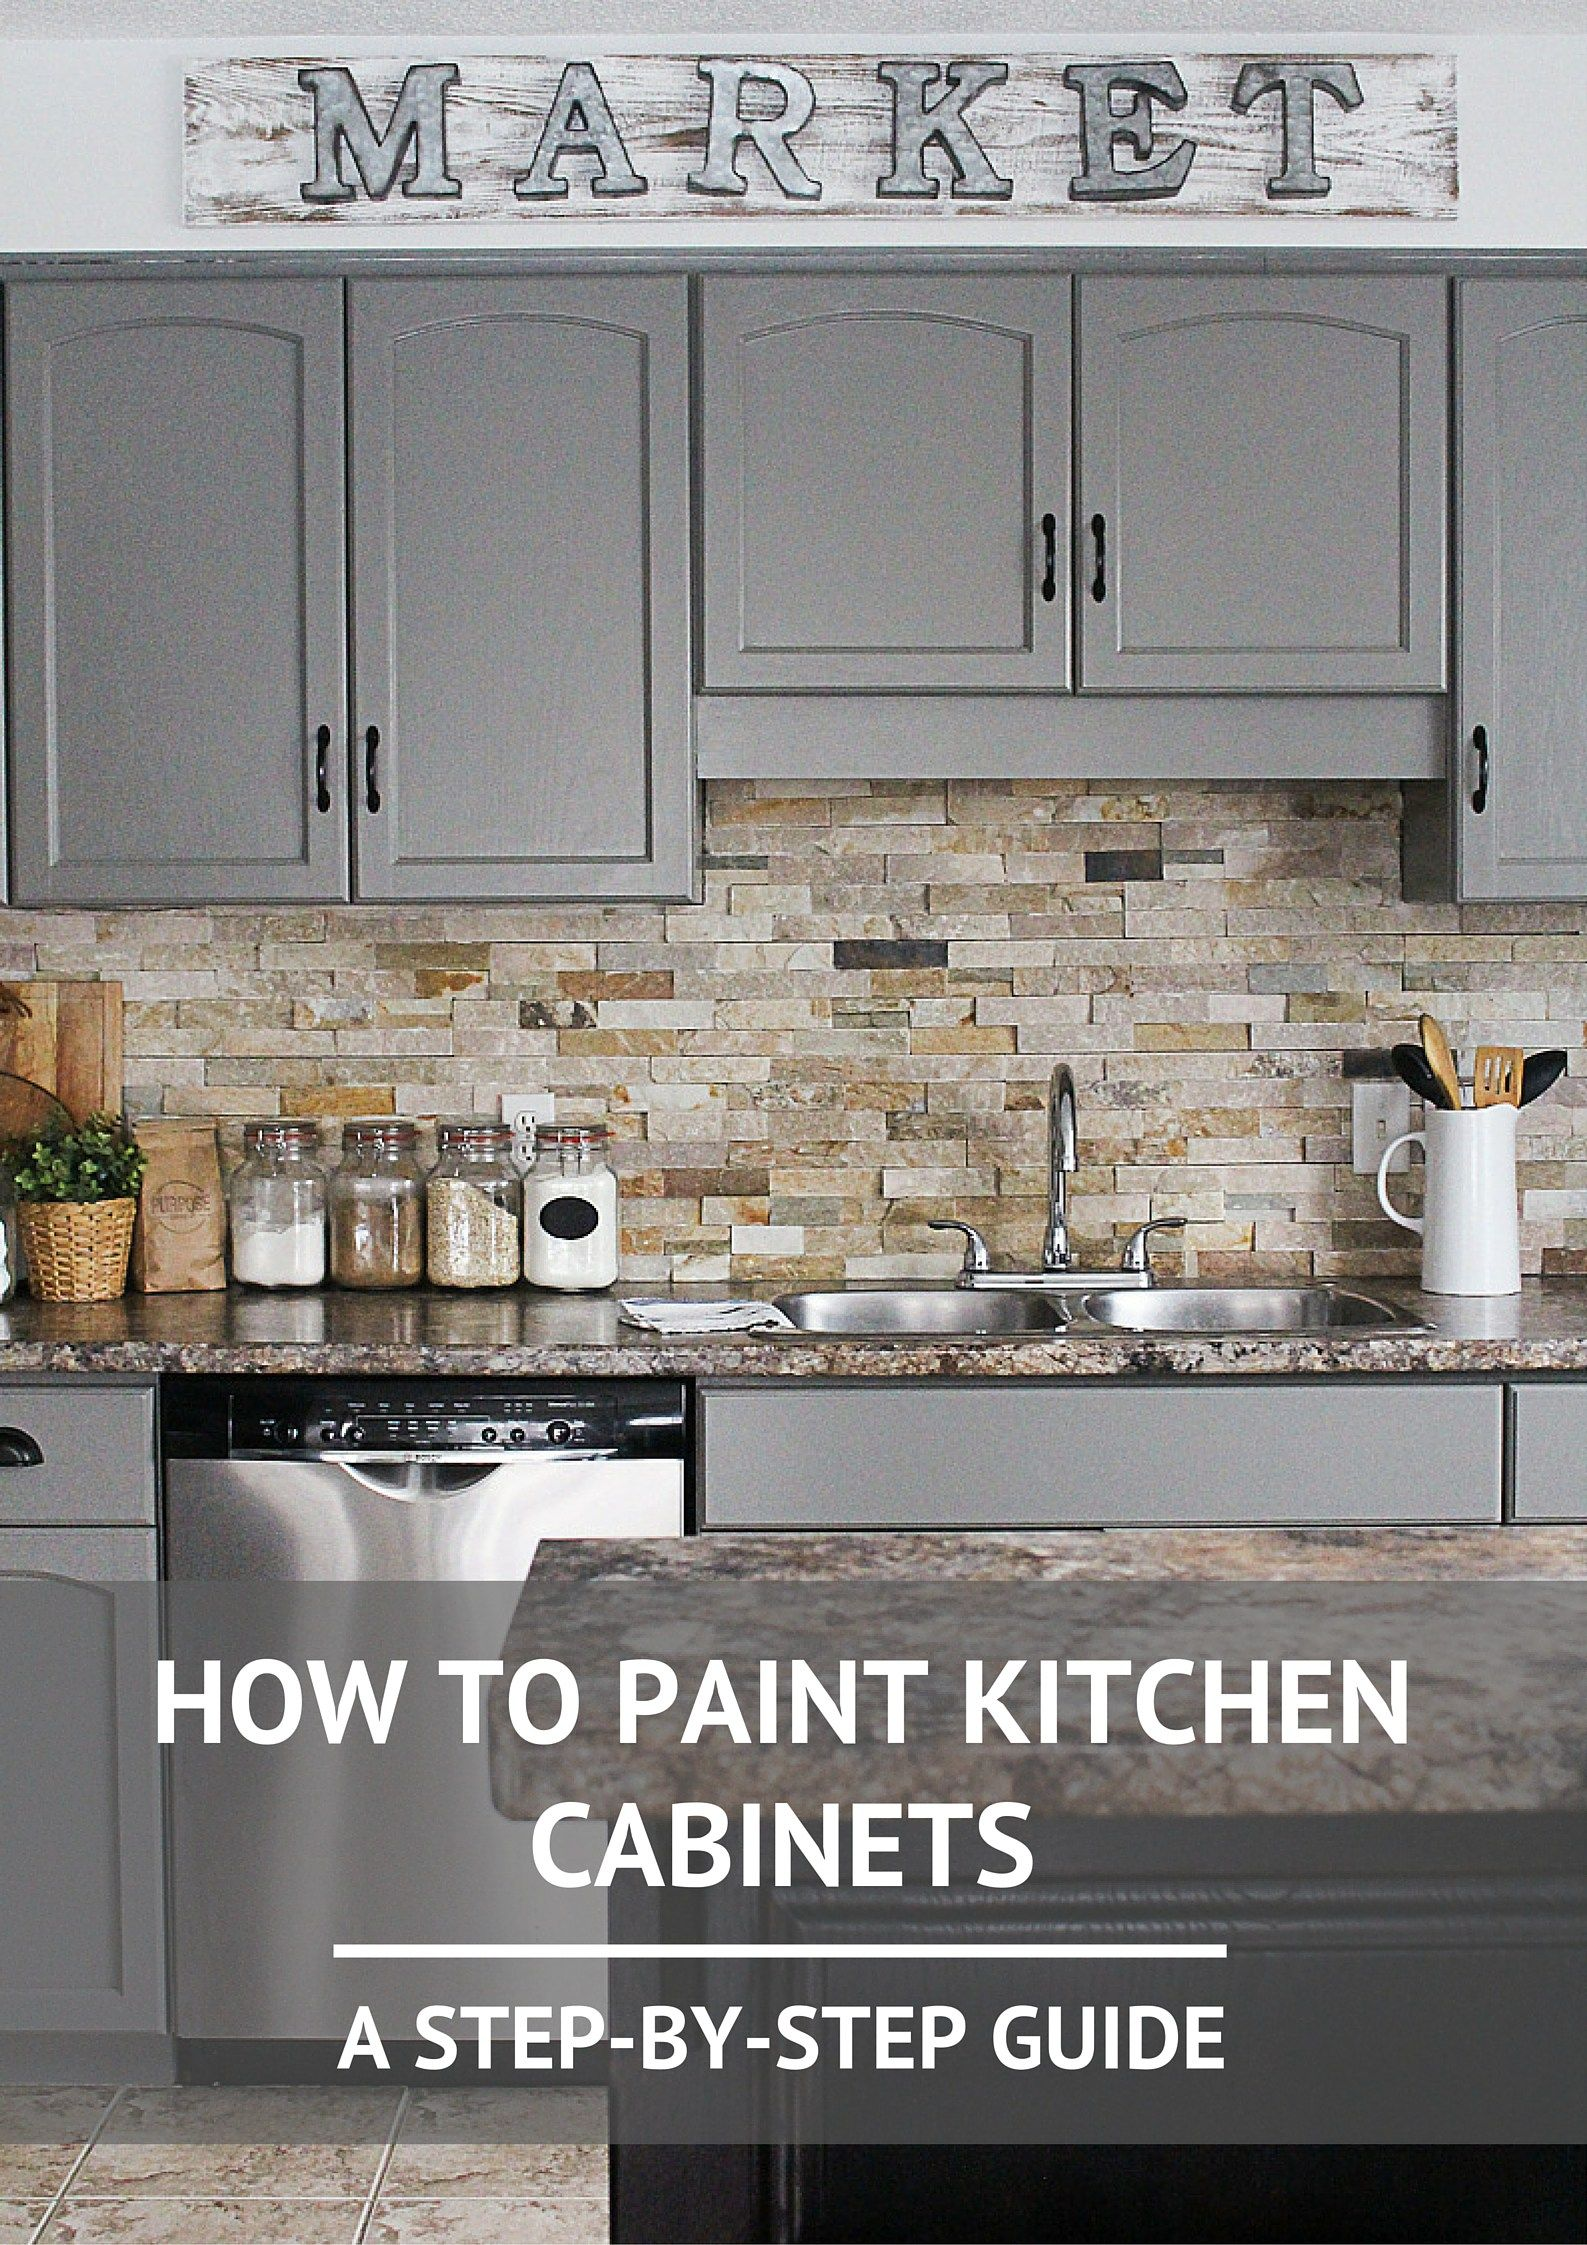 Grey Painted Kitchen Cabinets How To Paint Kitchen Cabinets  Step Guide Kitchens And House